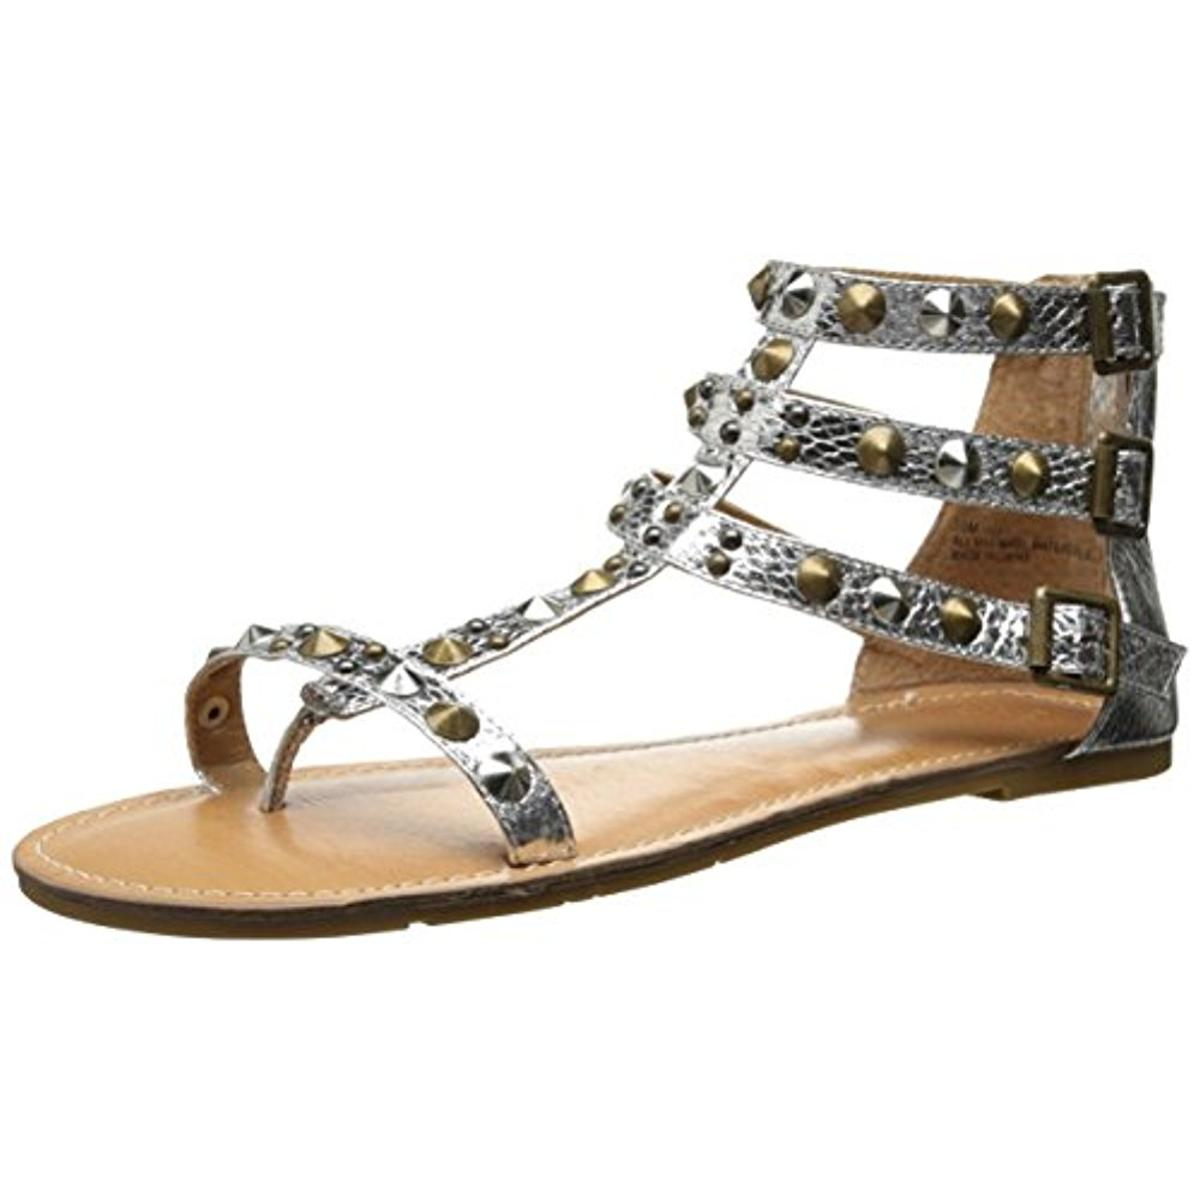 Mojo Moxy Womens Nomad Studded Thong Flat Sandals by Mojo Moxy